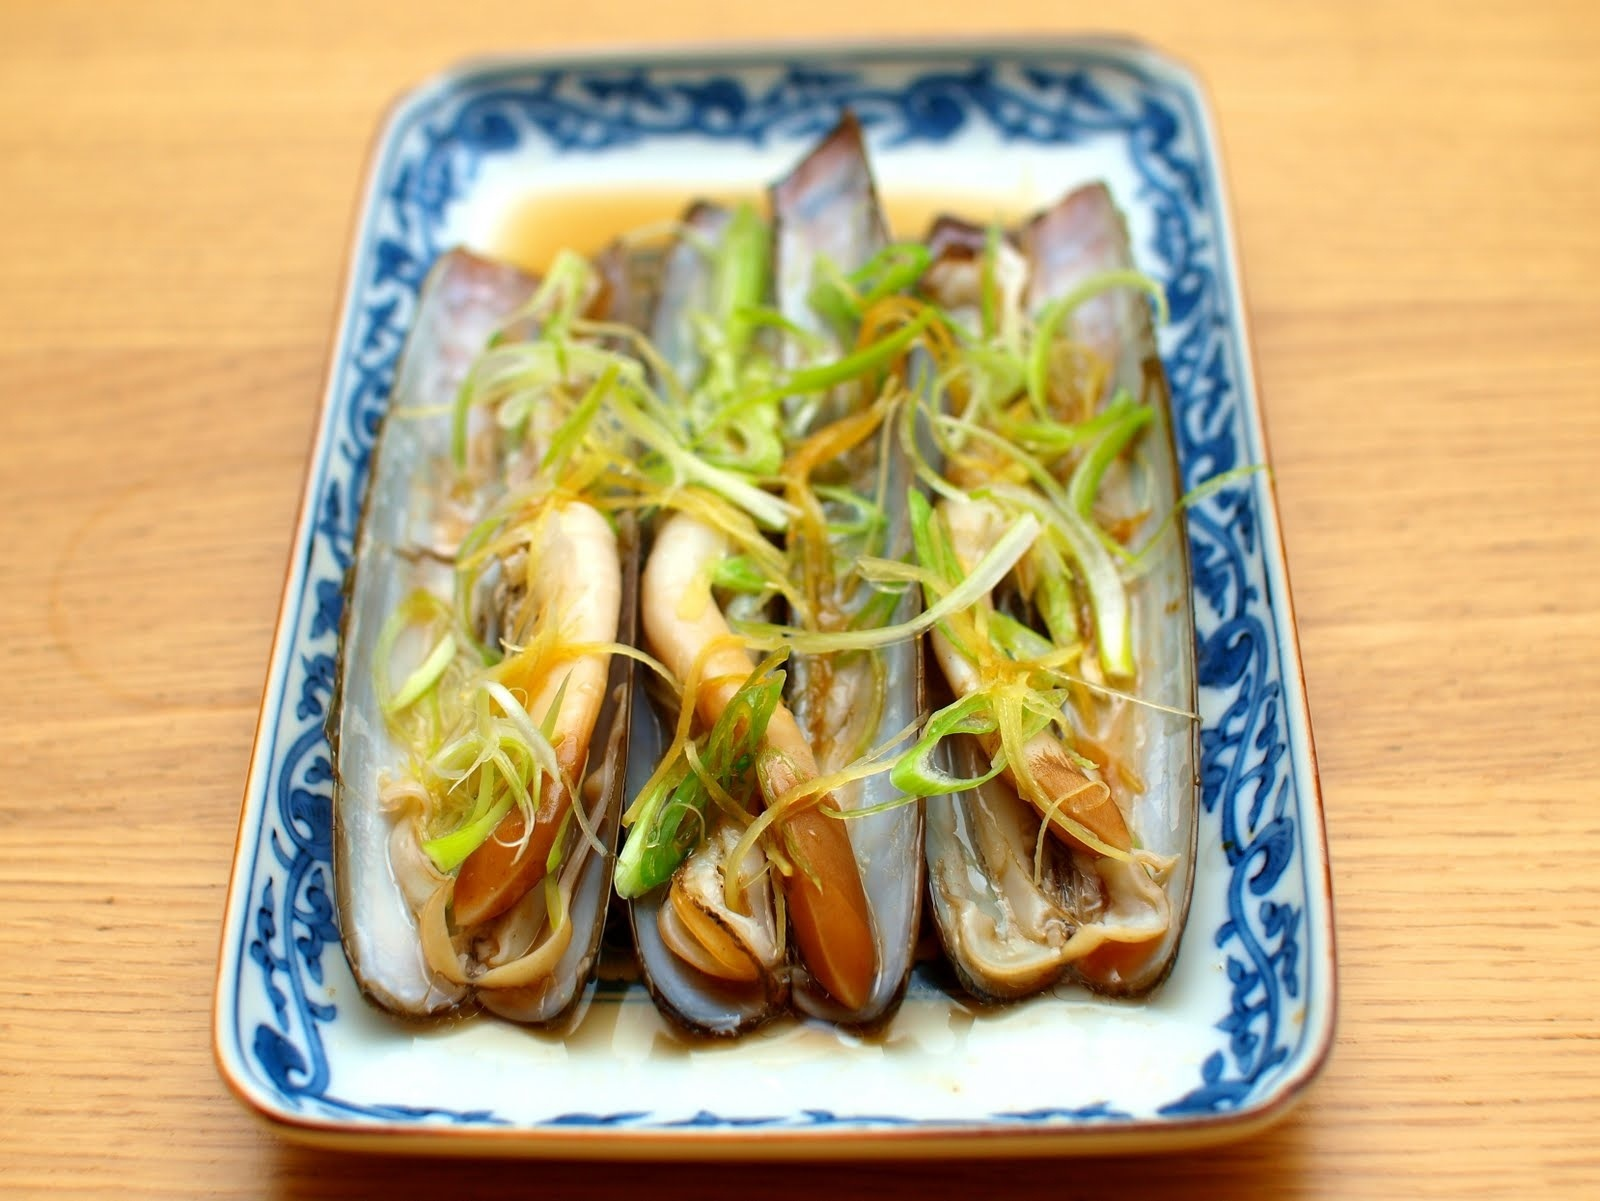 ... 2c 20783 smoked clams with tequila sauce recipes dishmaps smoked clams